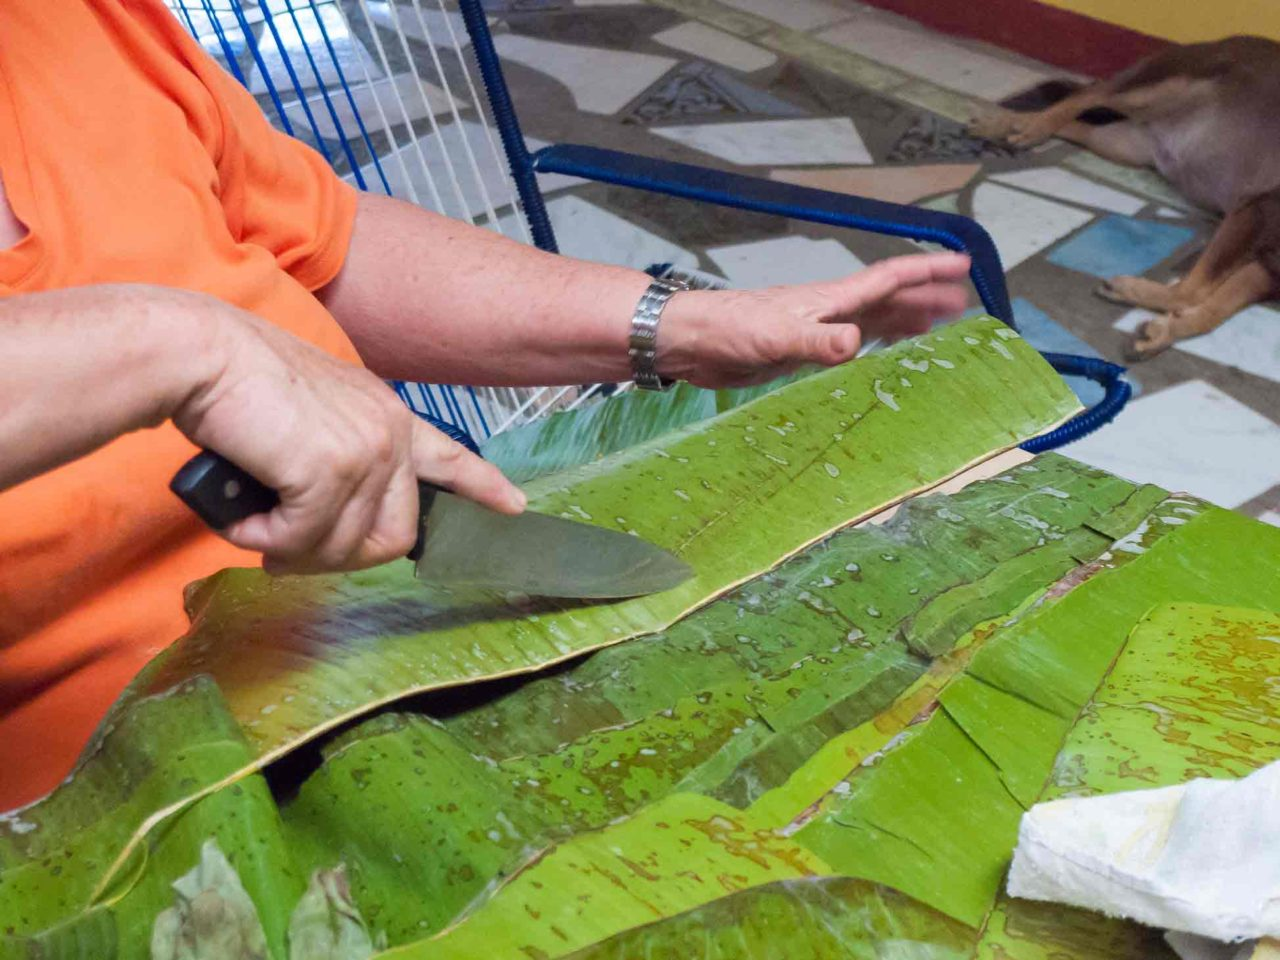 Costa Rican Tamales - cutting the stem off the plantain leaves. Recipe with photos